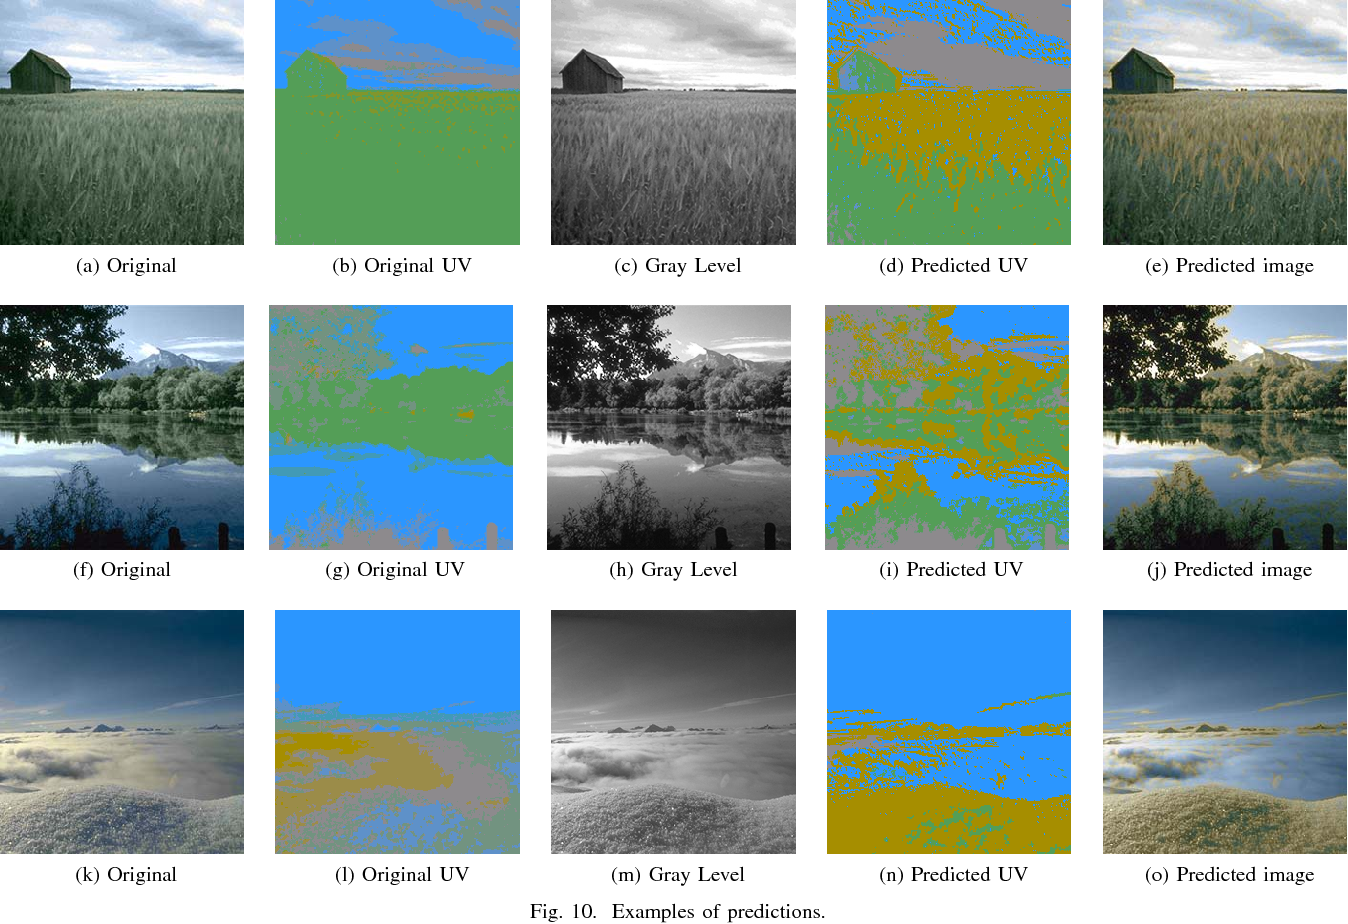 Image Colorization with Neural Networks - Semantic Scholar